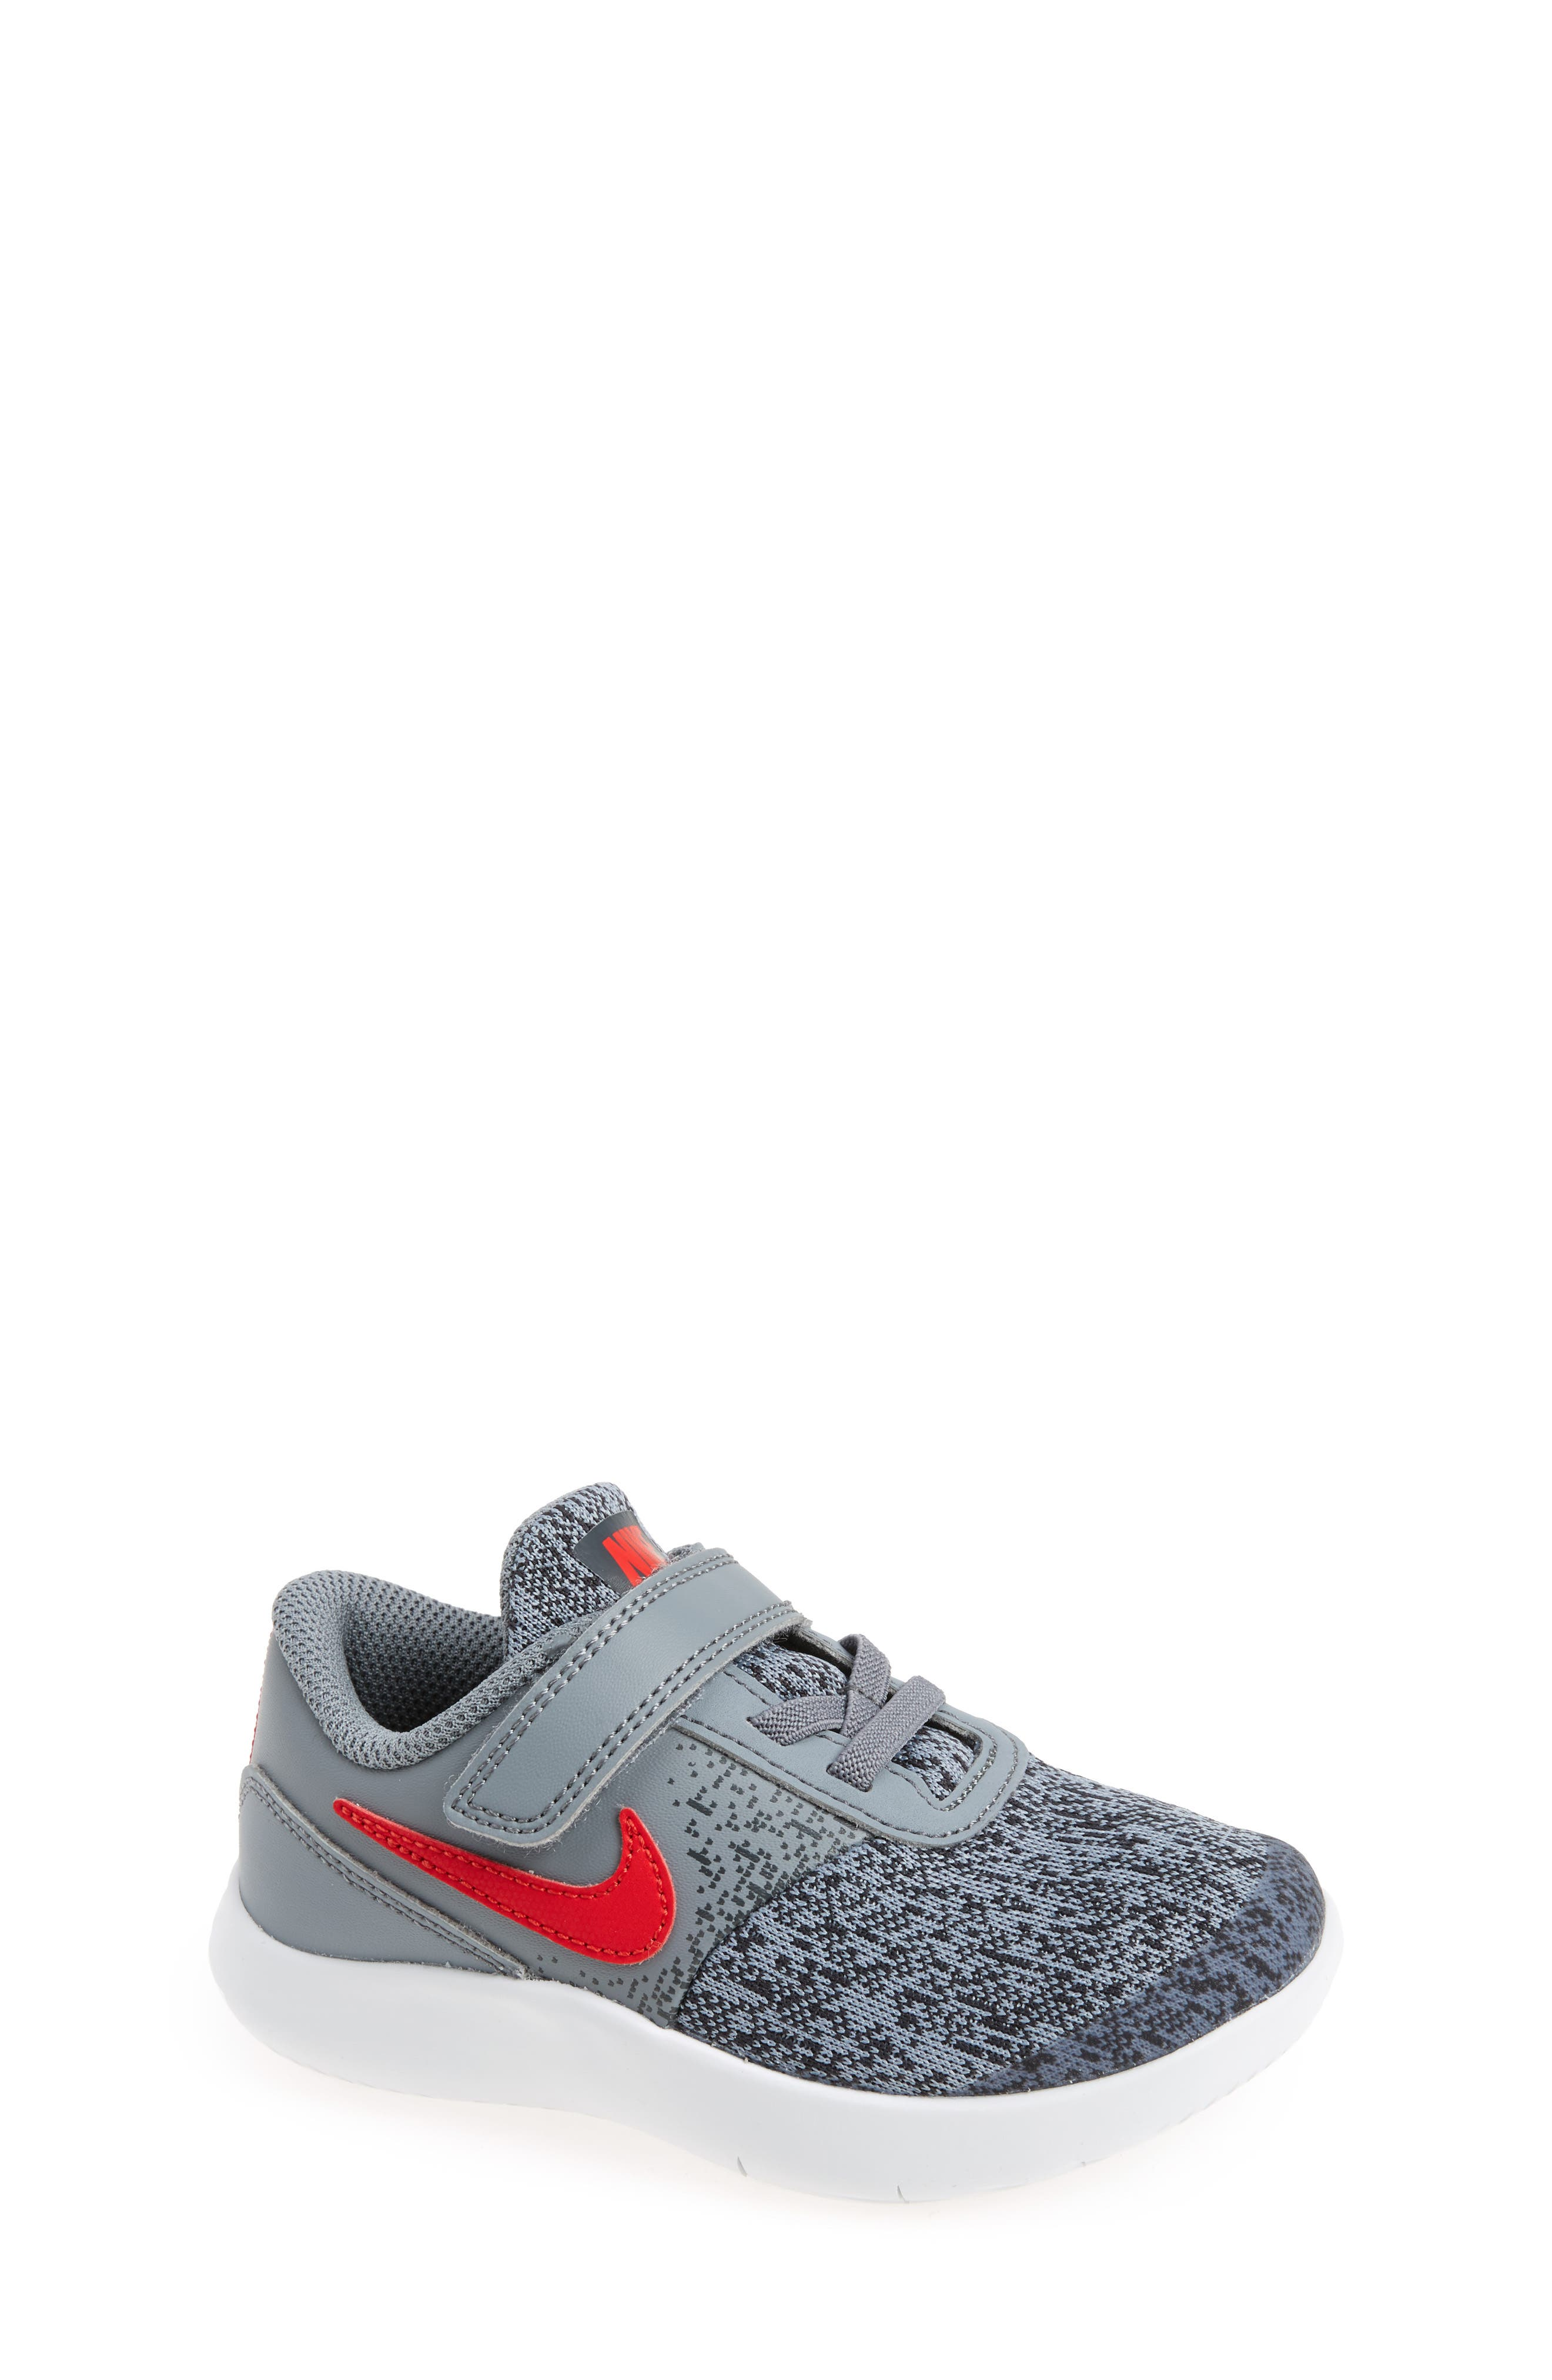 Flex Contact Sneaker,                             Main thumbnail 1, color,                             Cool Grey/ University Red